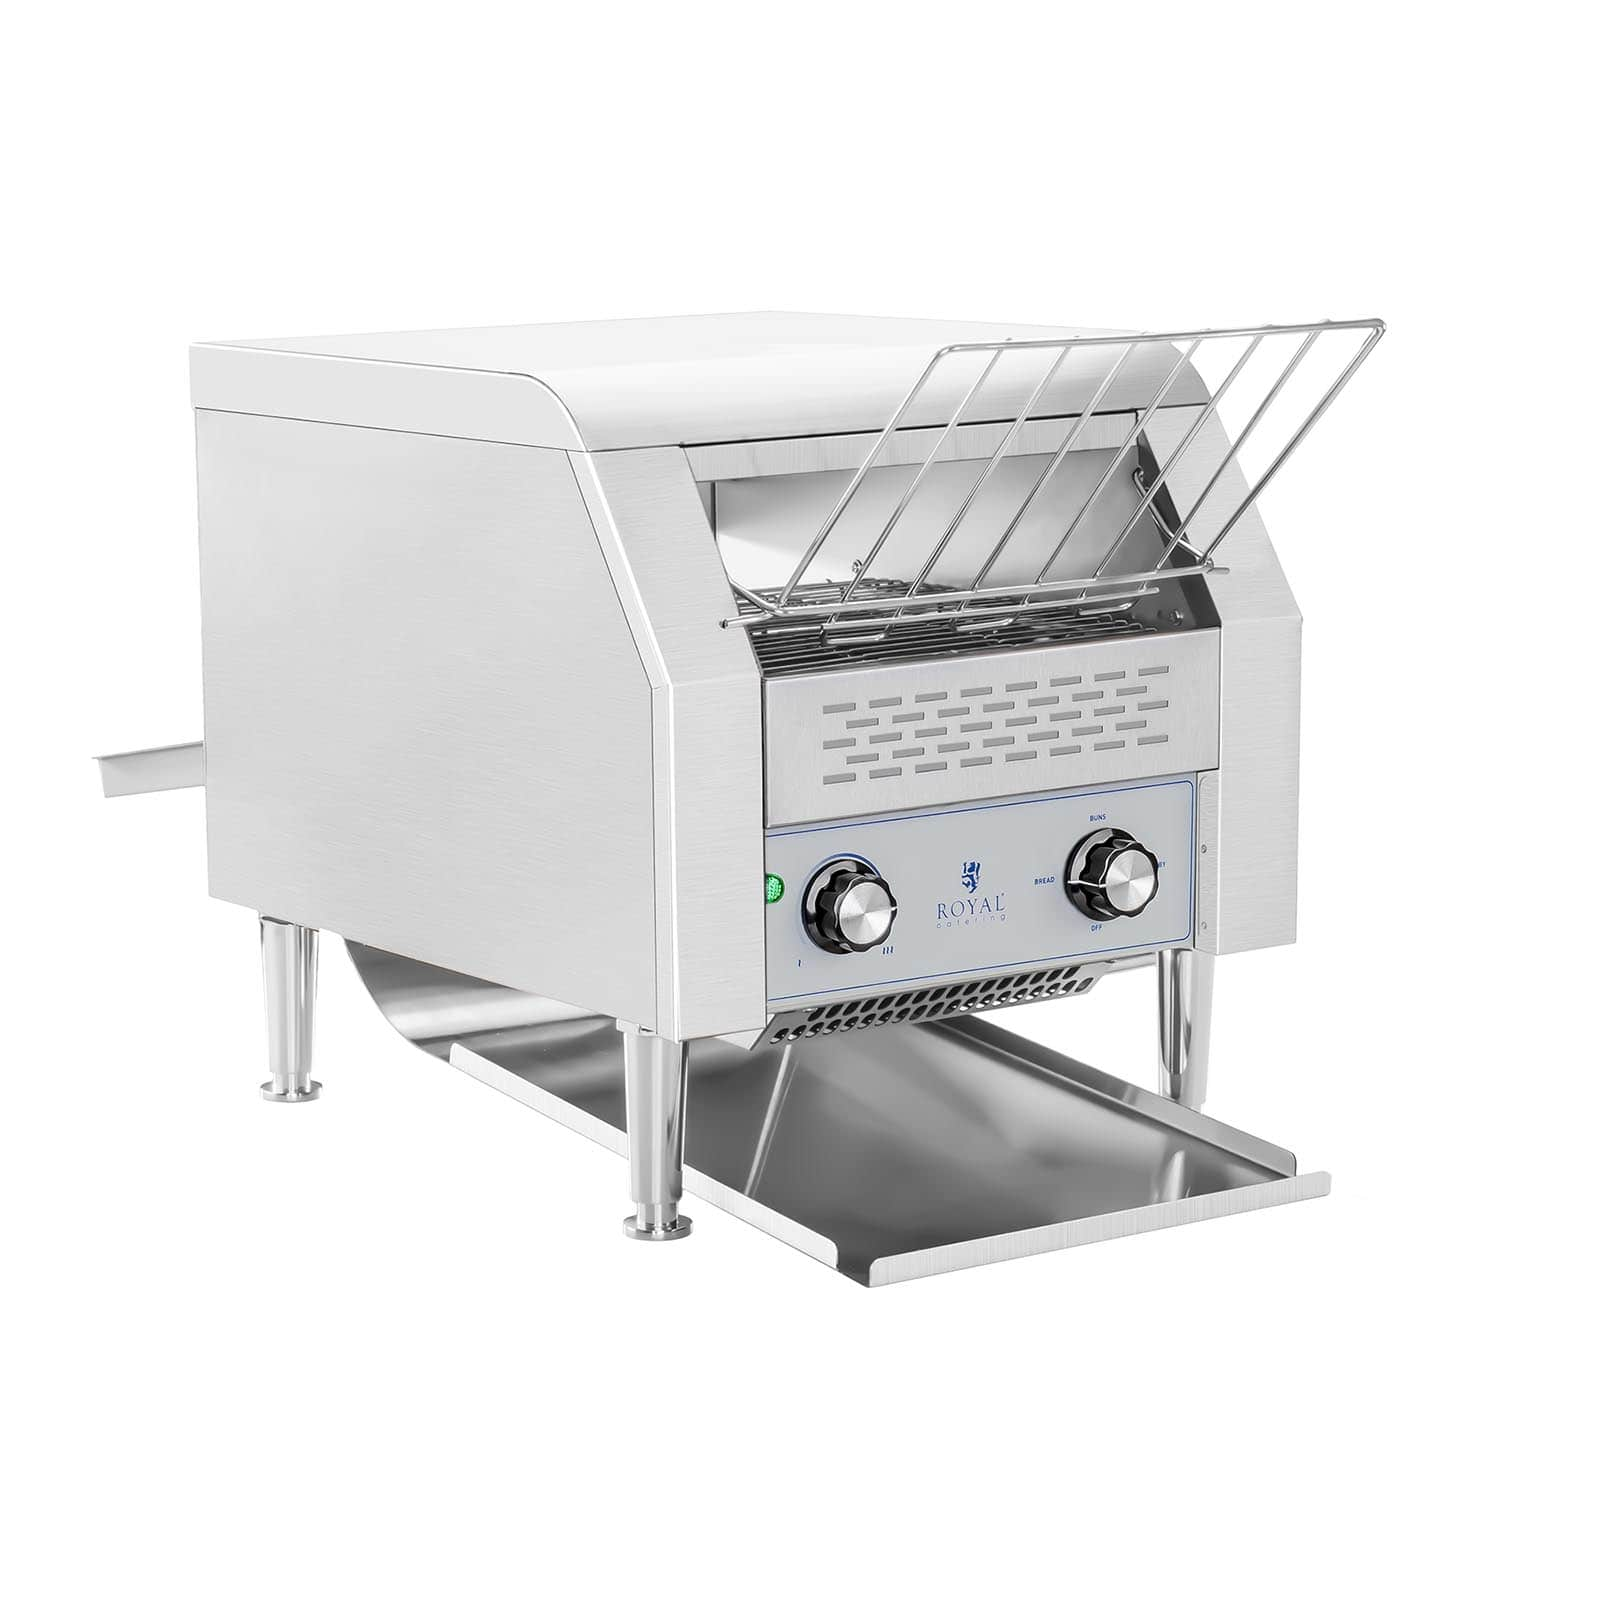 Catering toaster